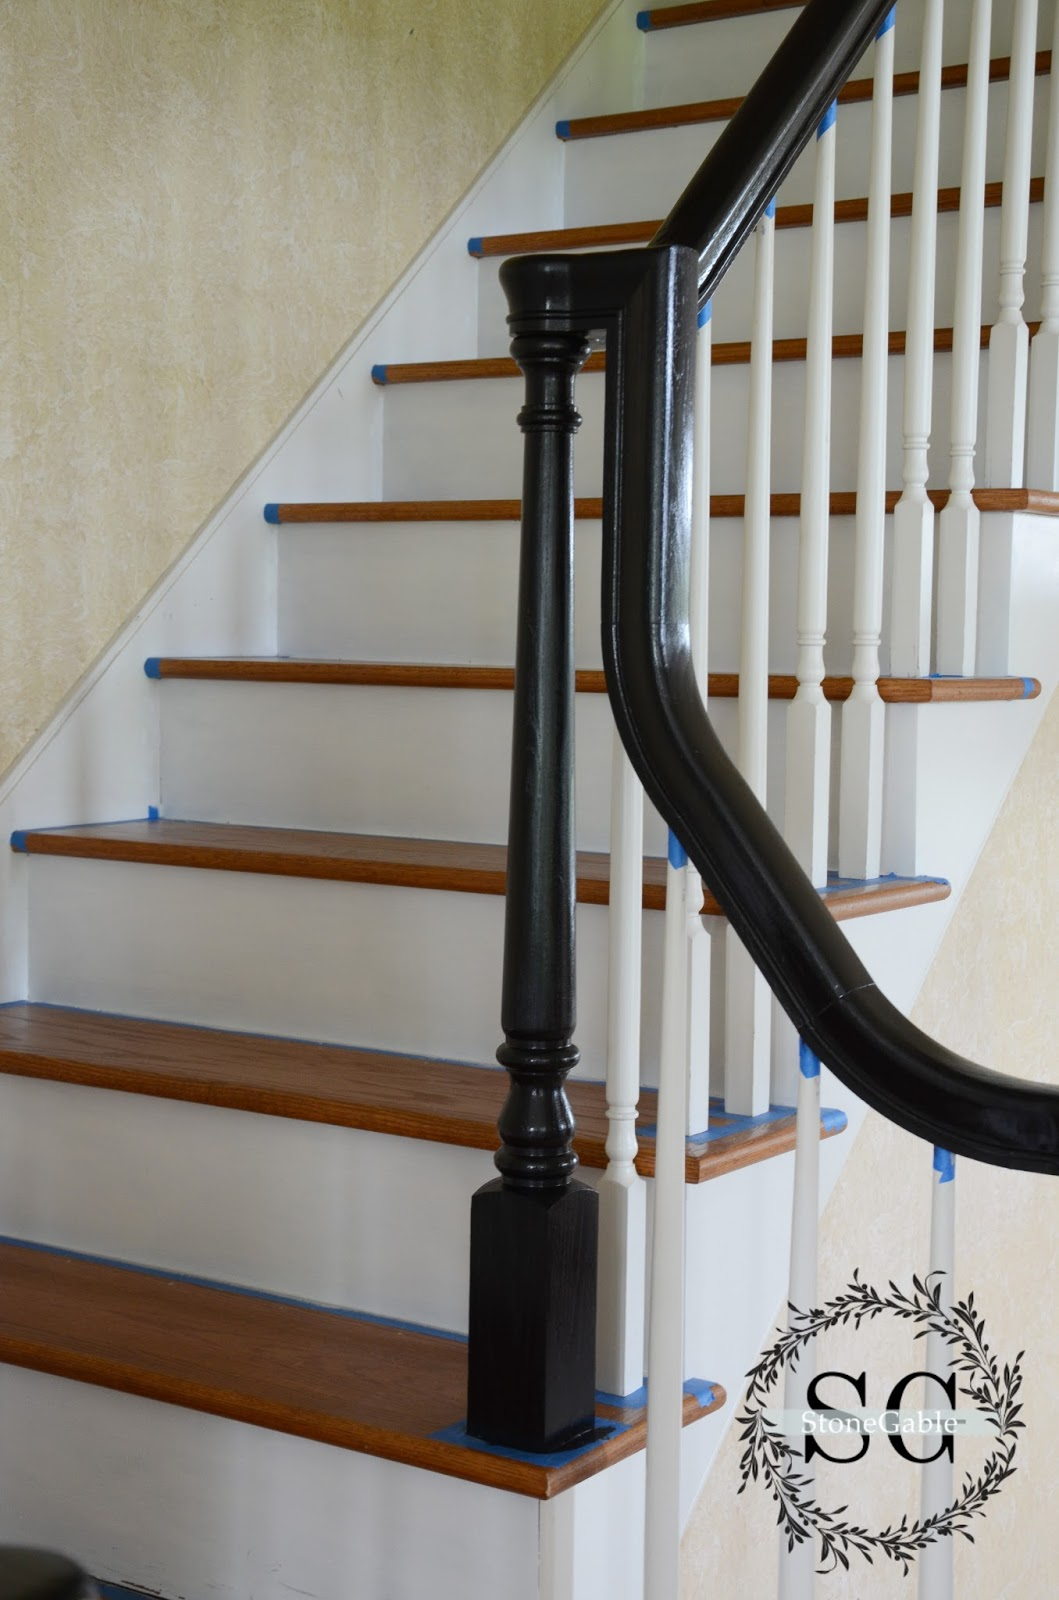 The Stairs In Progress Stonegable | Black Banister White Spindles | Black Railing | Wainscoting | White Painted Riser | Benjamin Moore Stair Railing | Baluster Curved Stylish Overview Stair